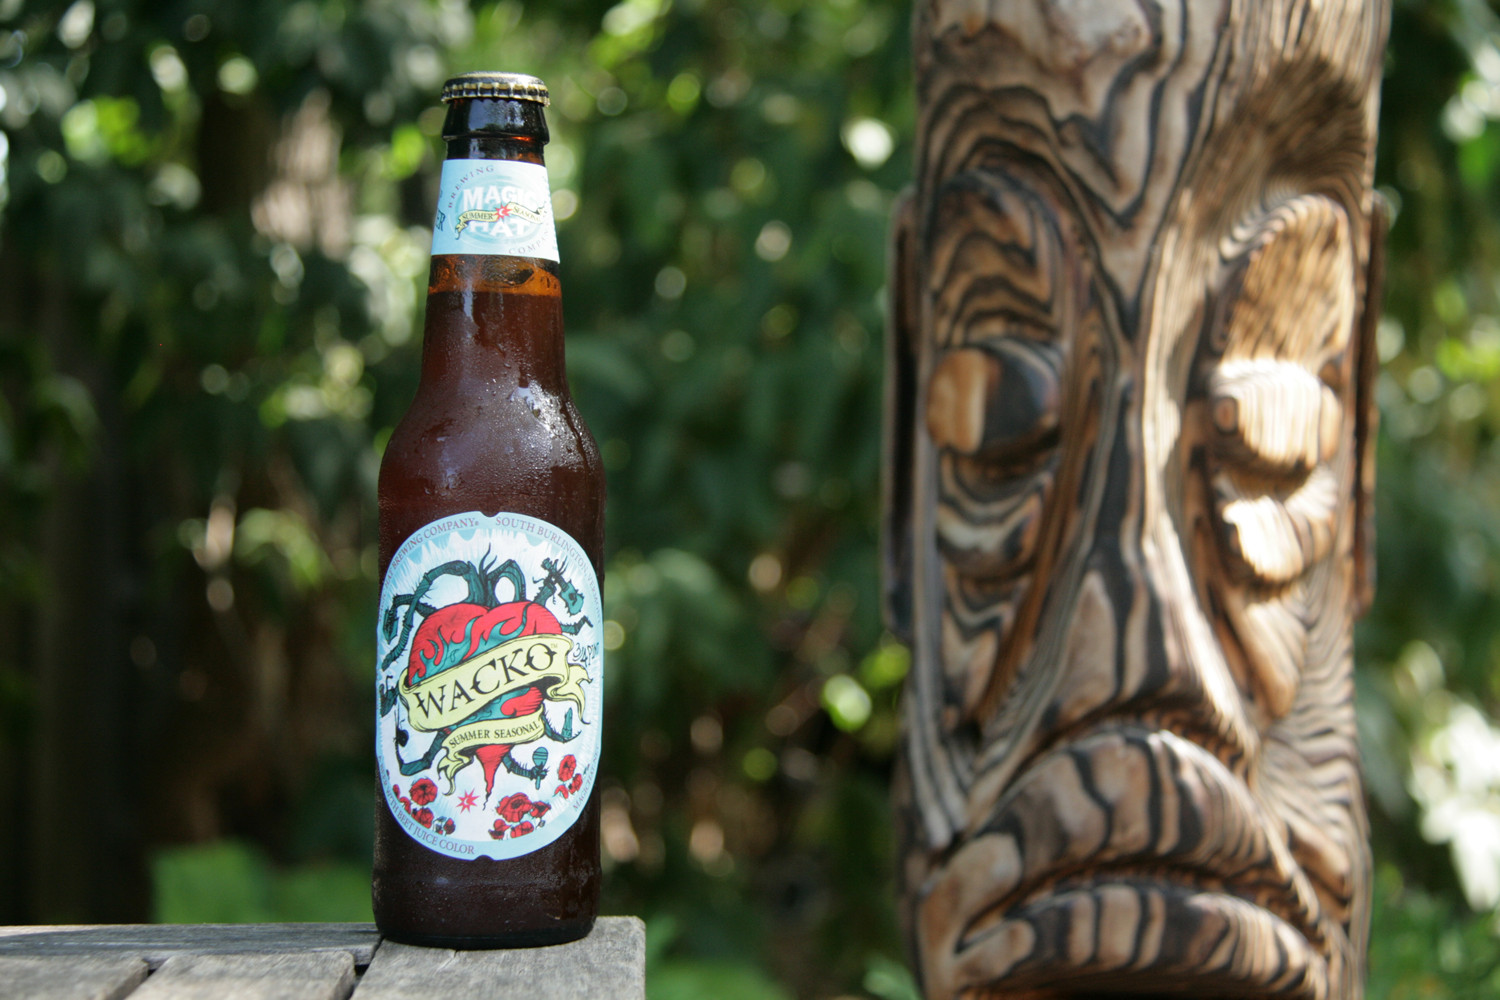 Wacko summer beer from Magic Hat is made with beet juice.